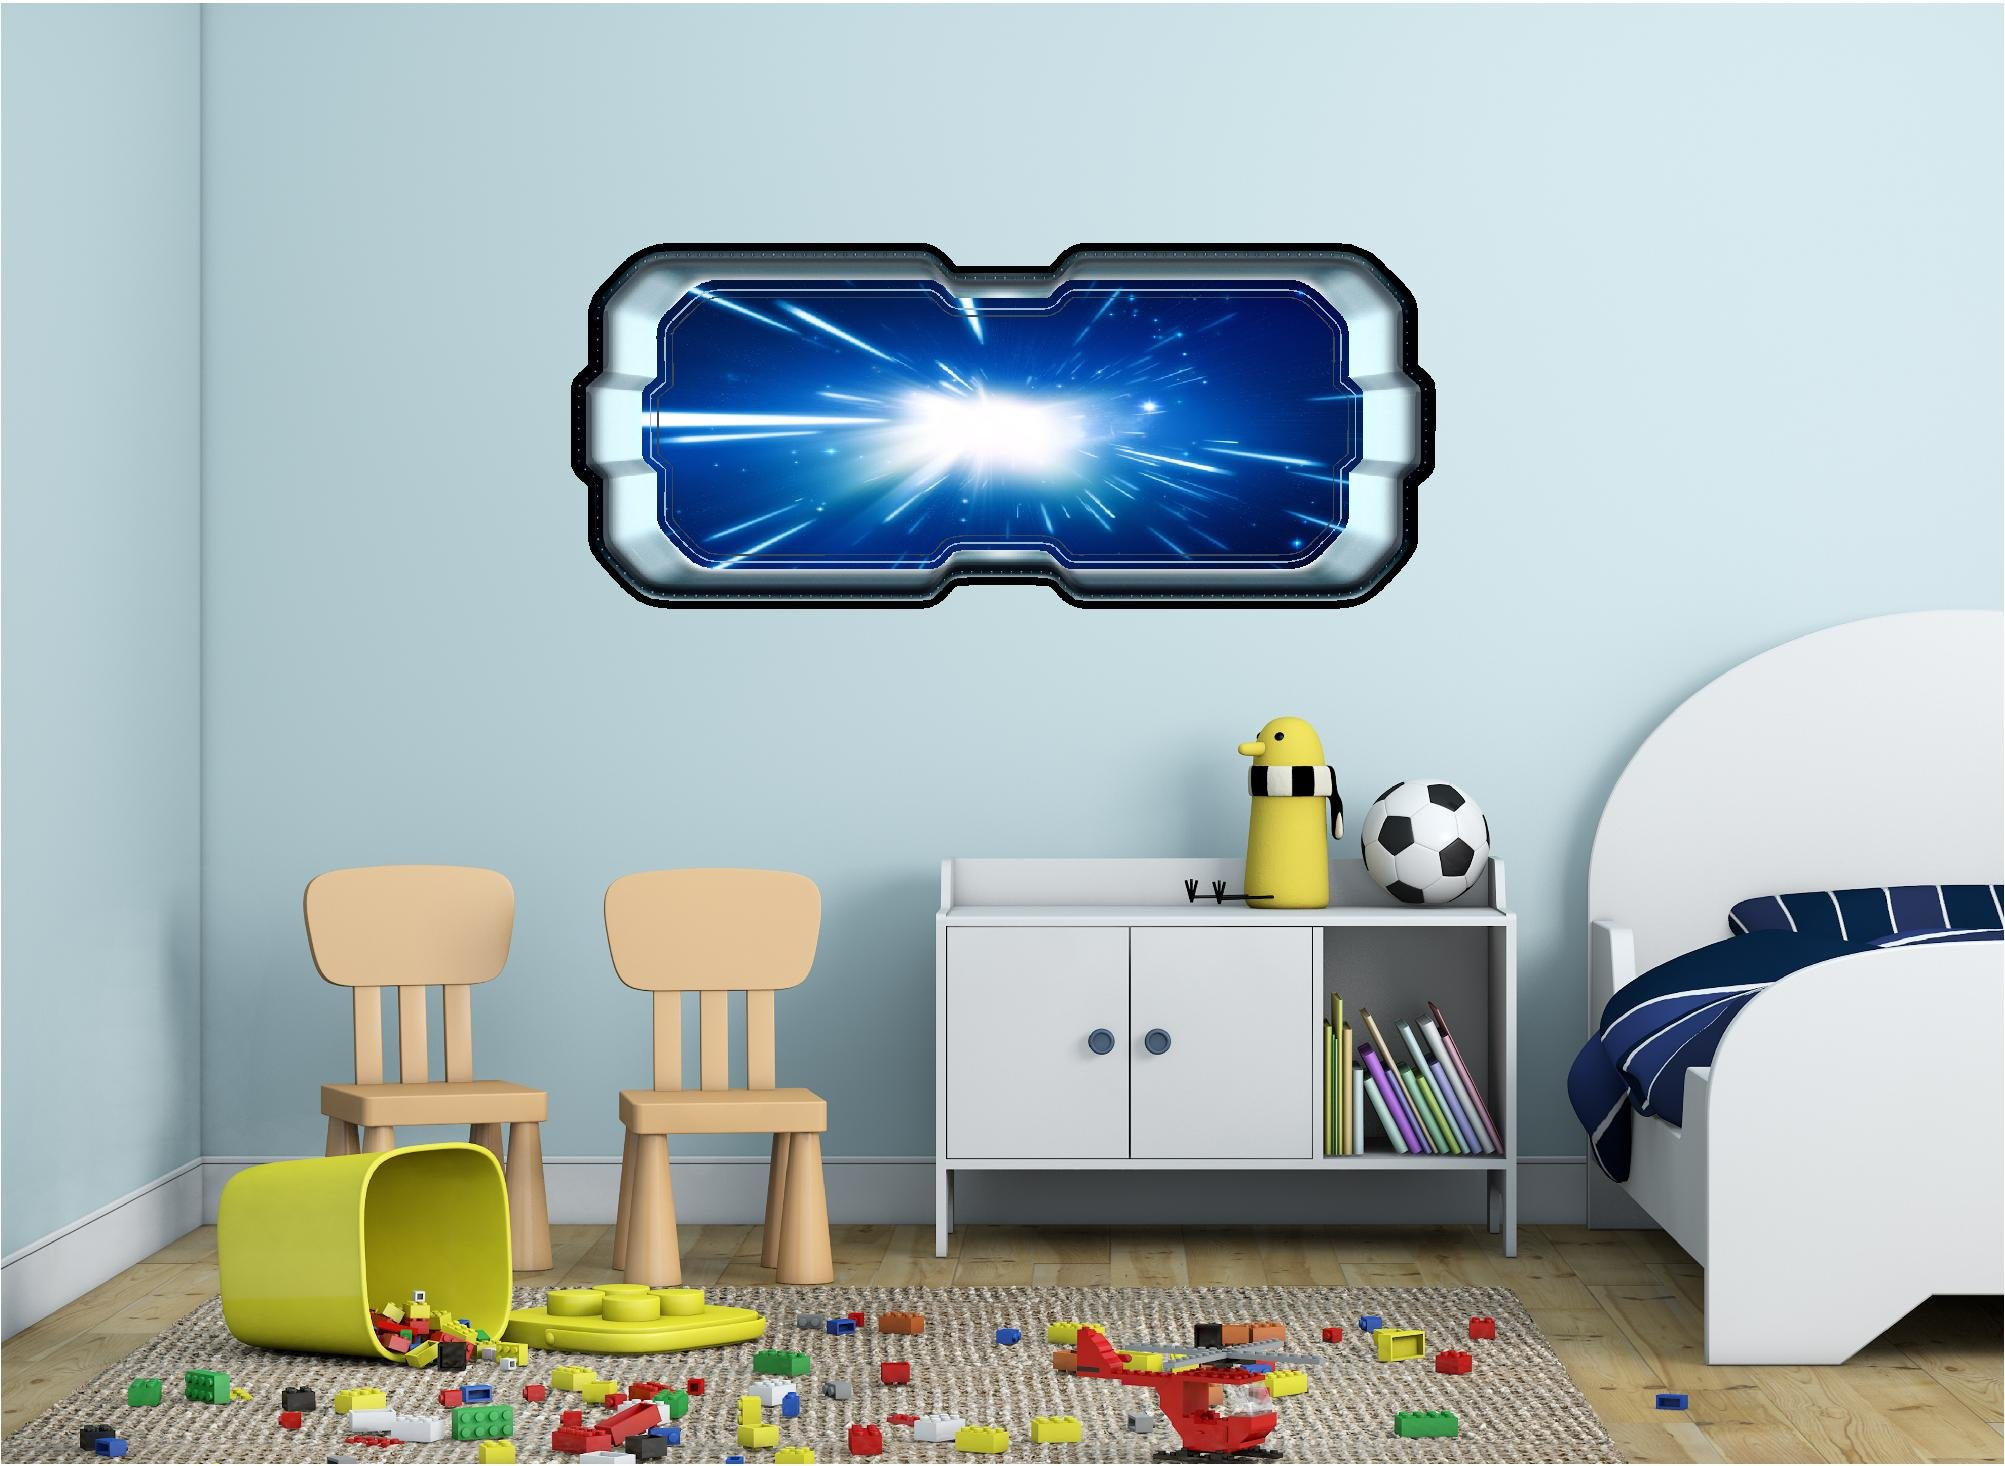 48'' SpaceScape Instant Star Ship Space Ship Window View LIGHT SPEED HYPERSPACE #1 Wall Sticker Decal Graphic Art Mural Kids Game Man Cave Room Decor NEW